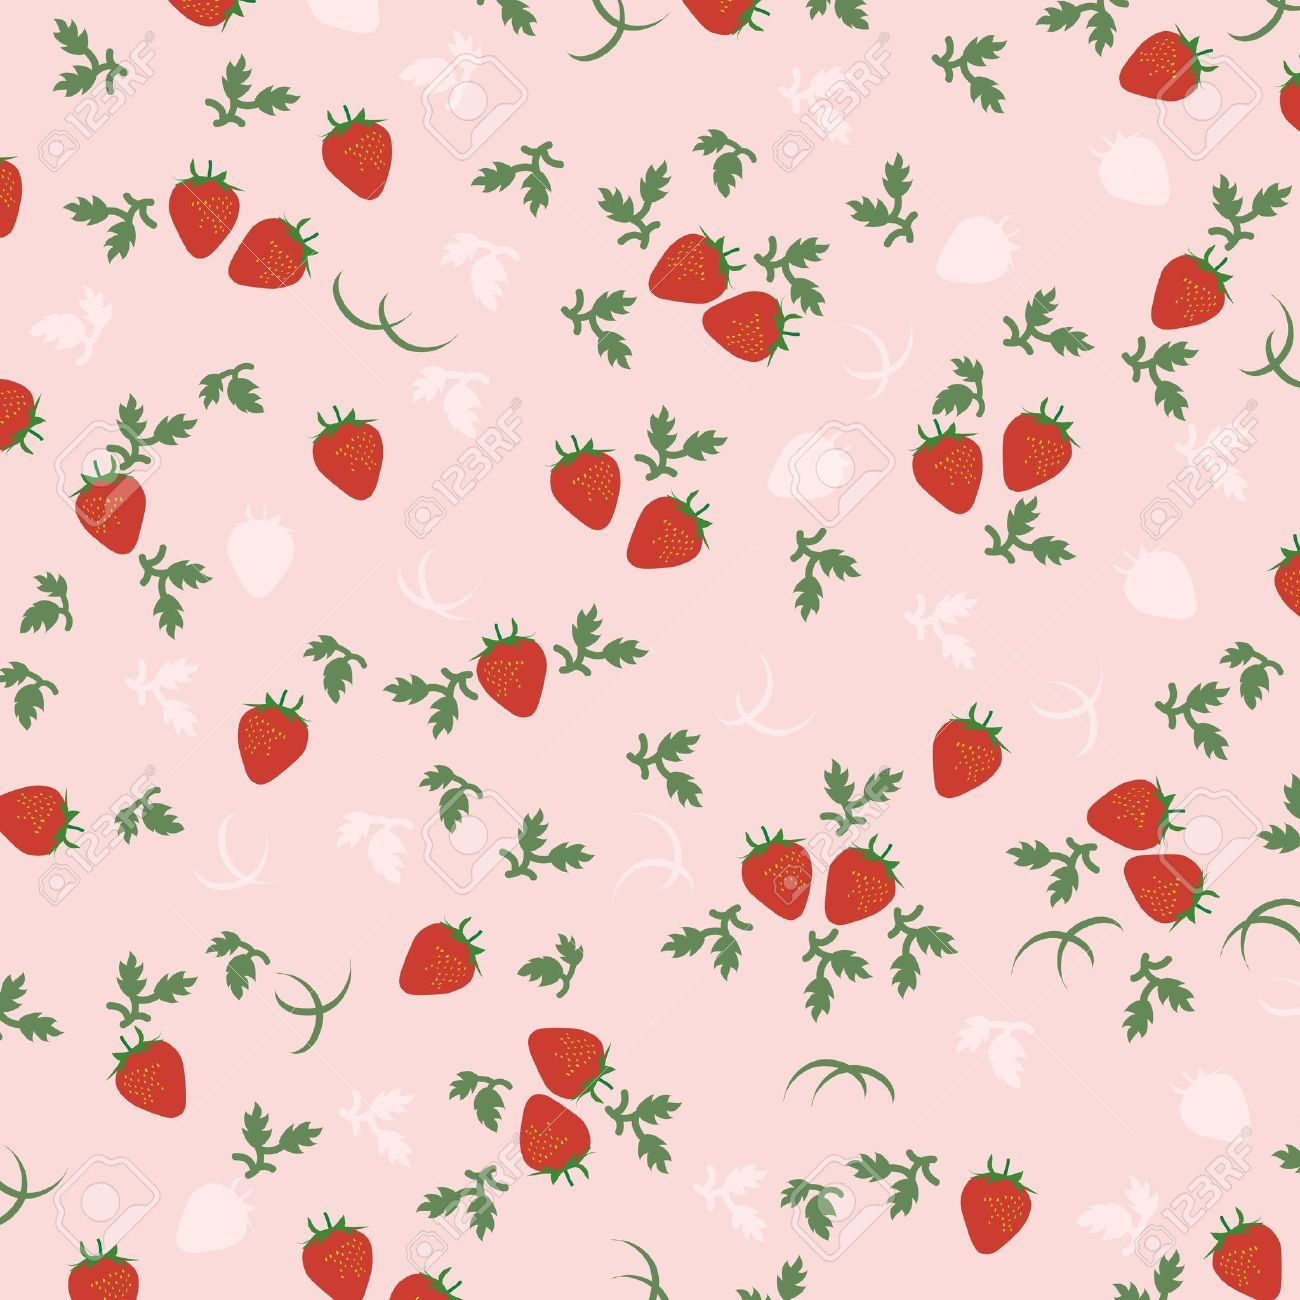 Aesthetic Cute Strawberry Cow Wallpaper